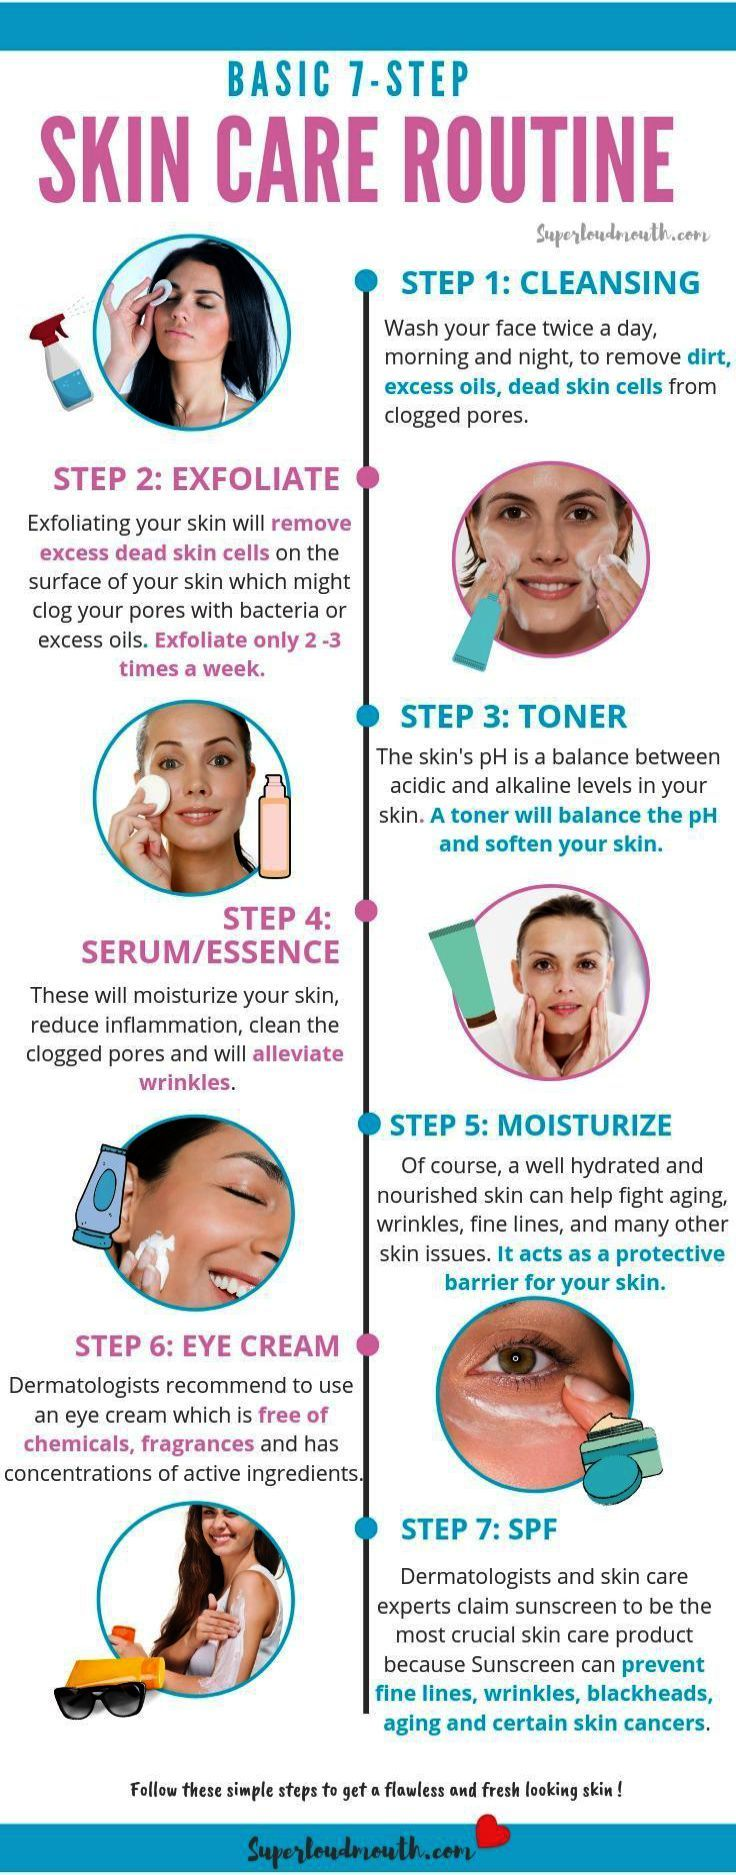 Skincarerx Buy Online Nz Skincare Essentials In Find My Skincare Routine Quiz Skin Care Routine Steps Skin Care Routine Best Skin Care Routine